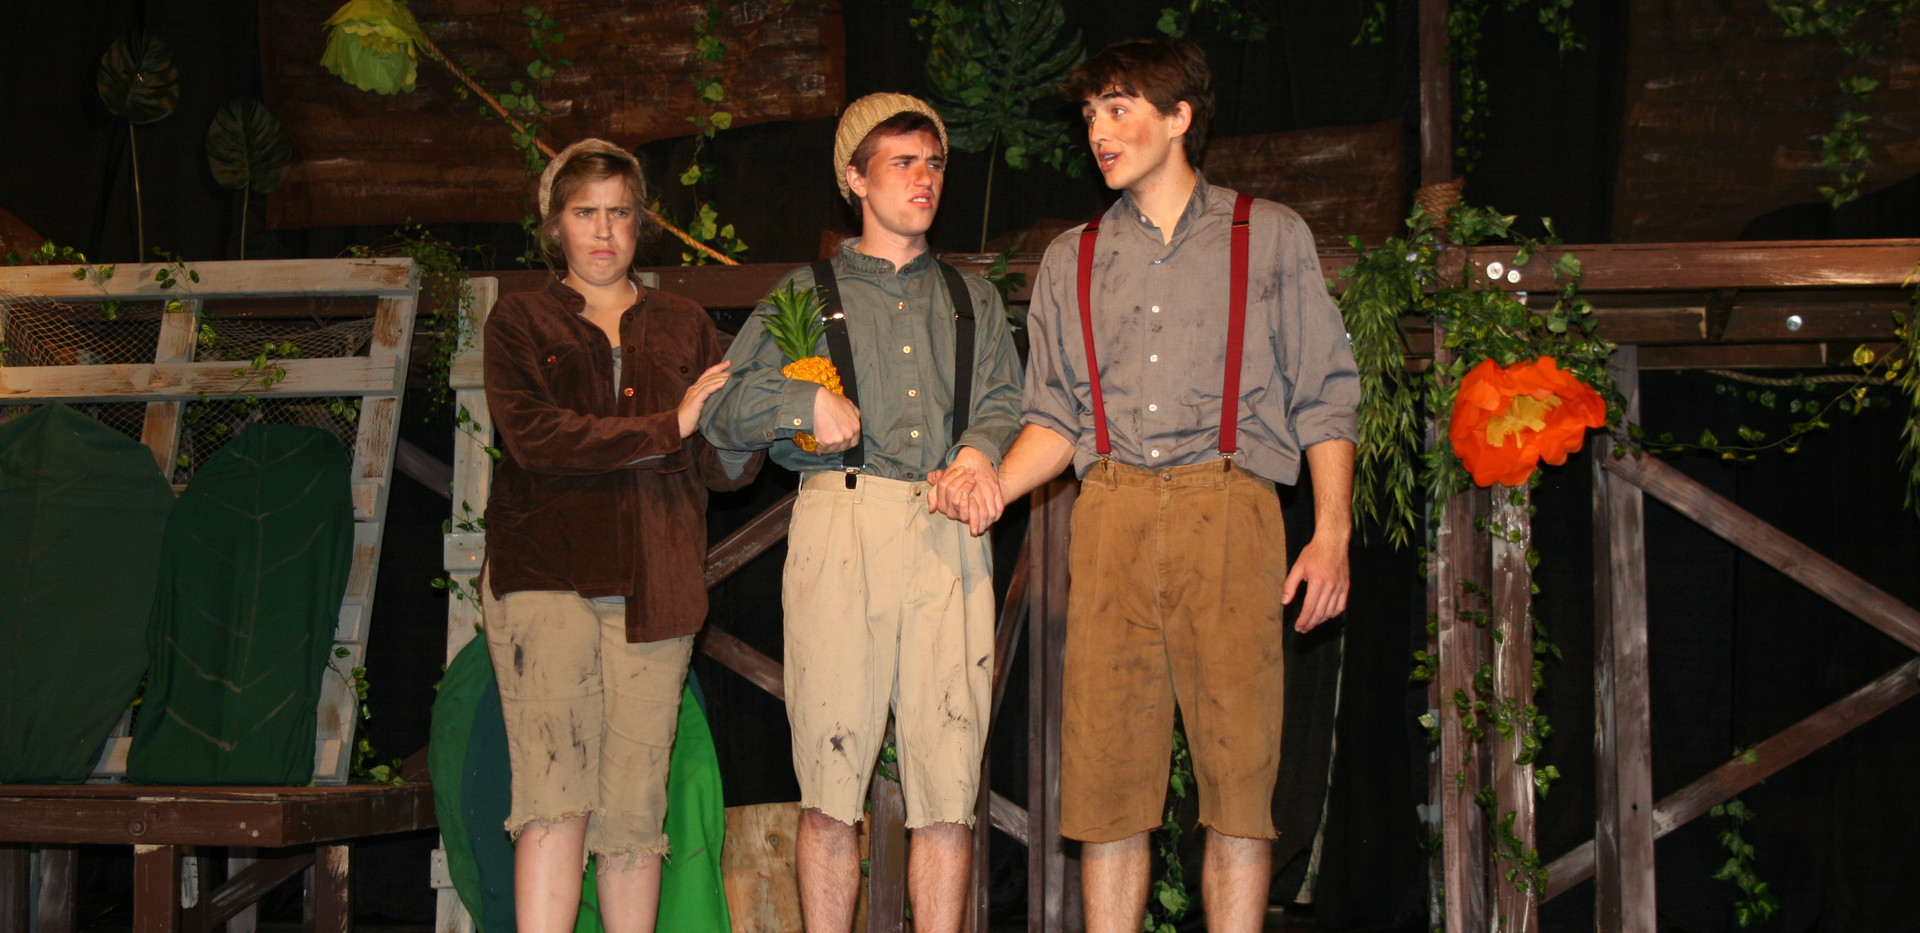 Peter and the Starcatcher - Prentiss, Ted, and Peter